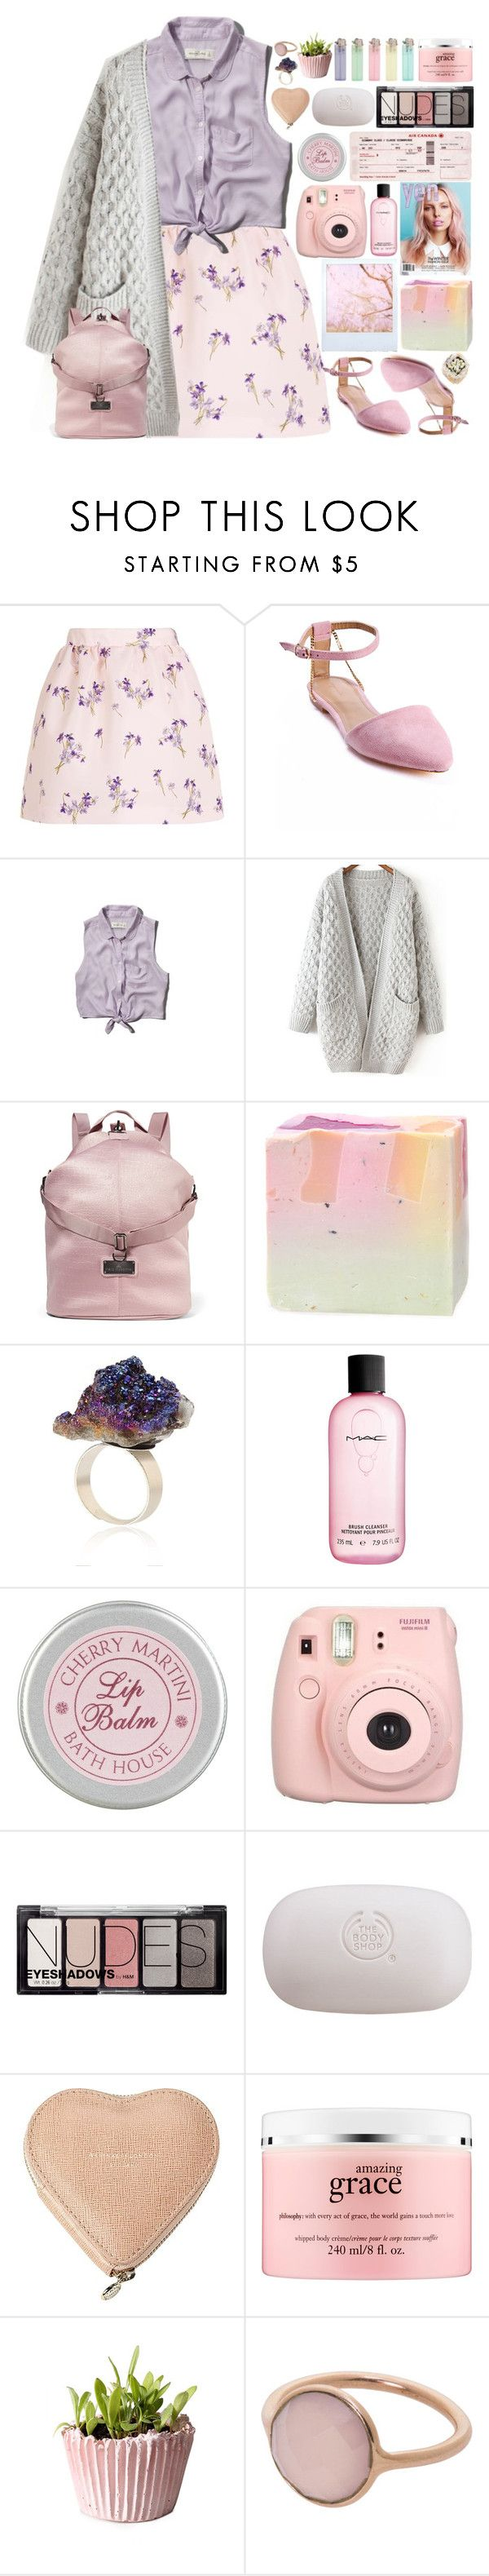 """Lavender"" by doga1 ❤ liked on Polyvore featuring RED Valentino, Sergio Bari, Abercrombie & Fitch, adidas, MAC Cosmetics, The Unbranded Brand, H&M, The Body Shop, Aspinal of London and philosophy"